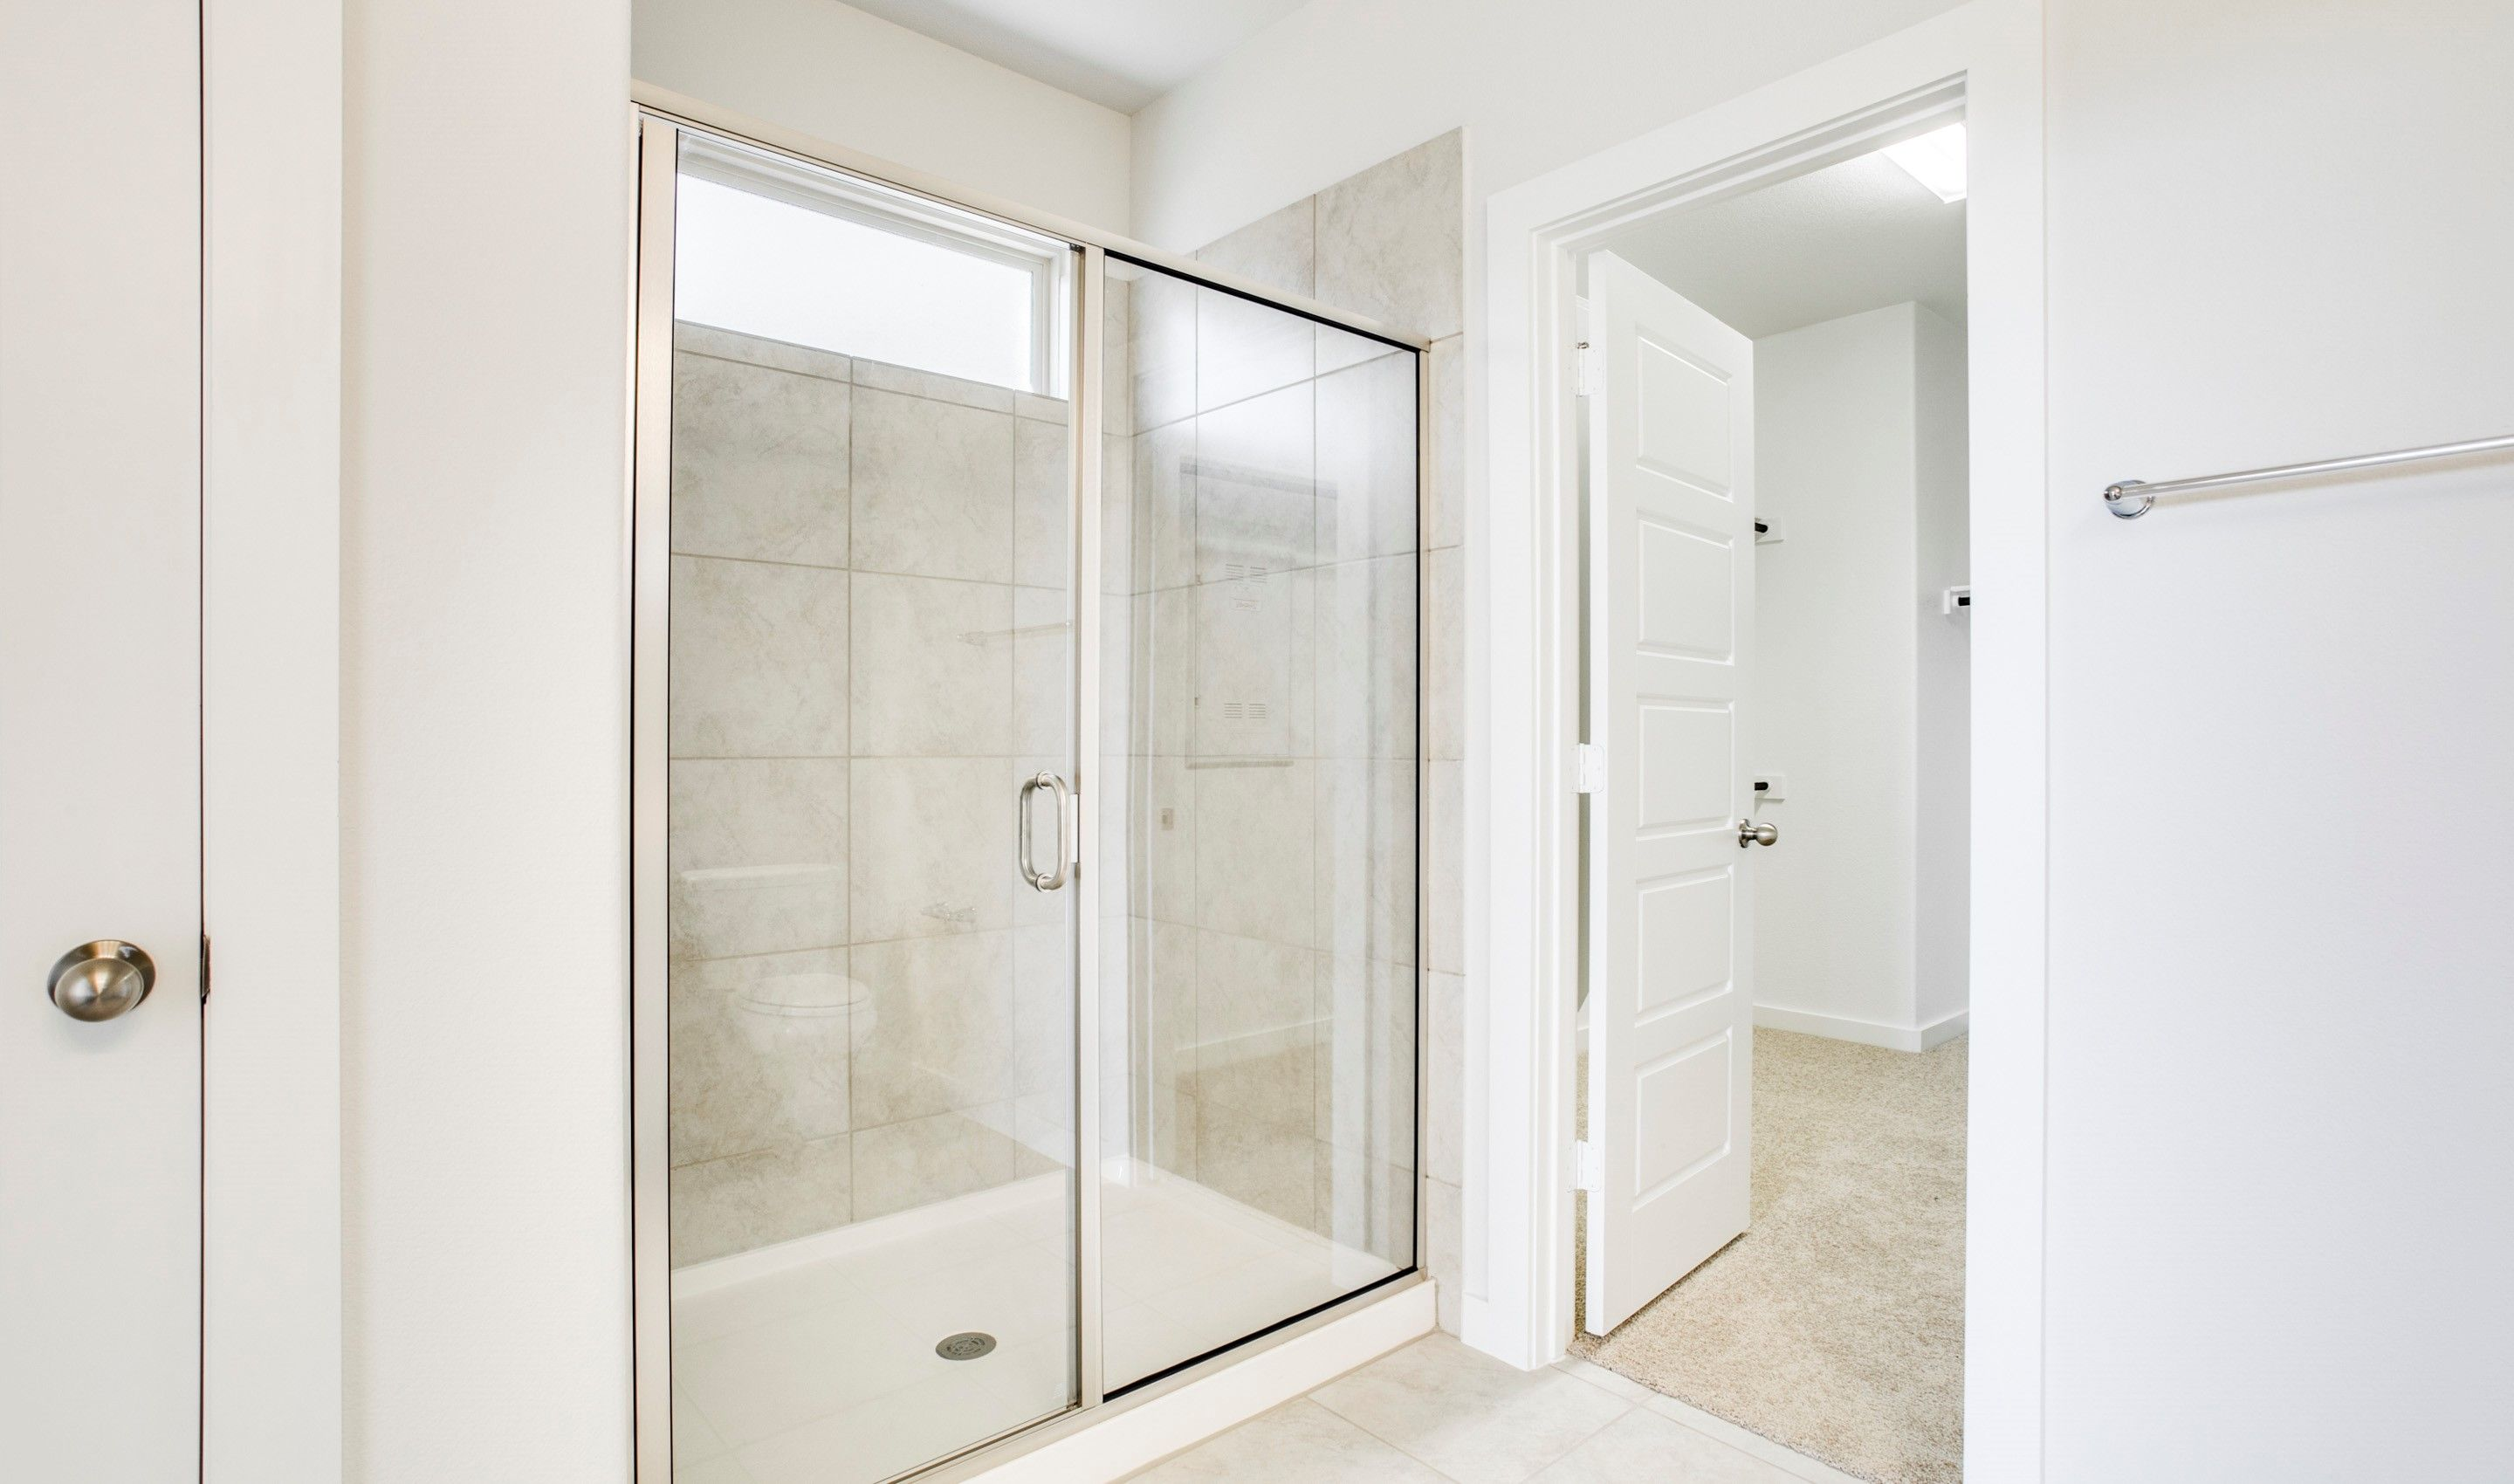 Bathroom featured in the Brentwood II By K. Hovnanian® Homes in Dallas, TX